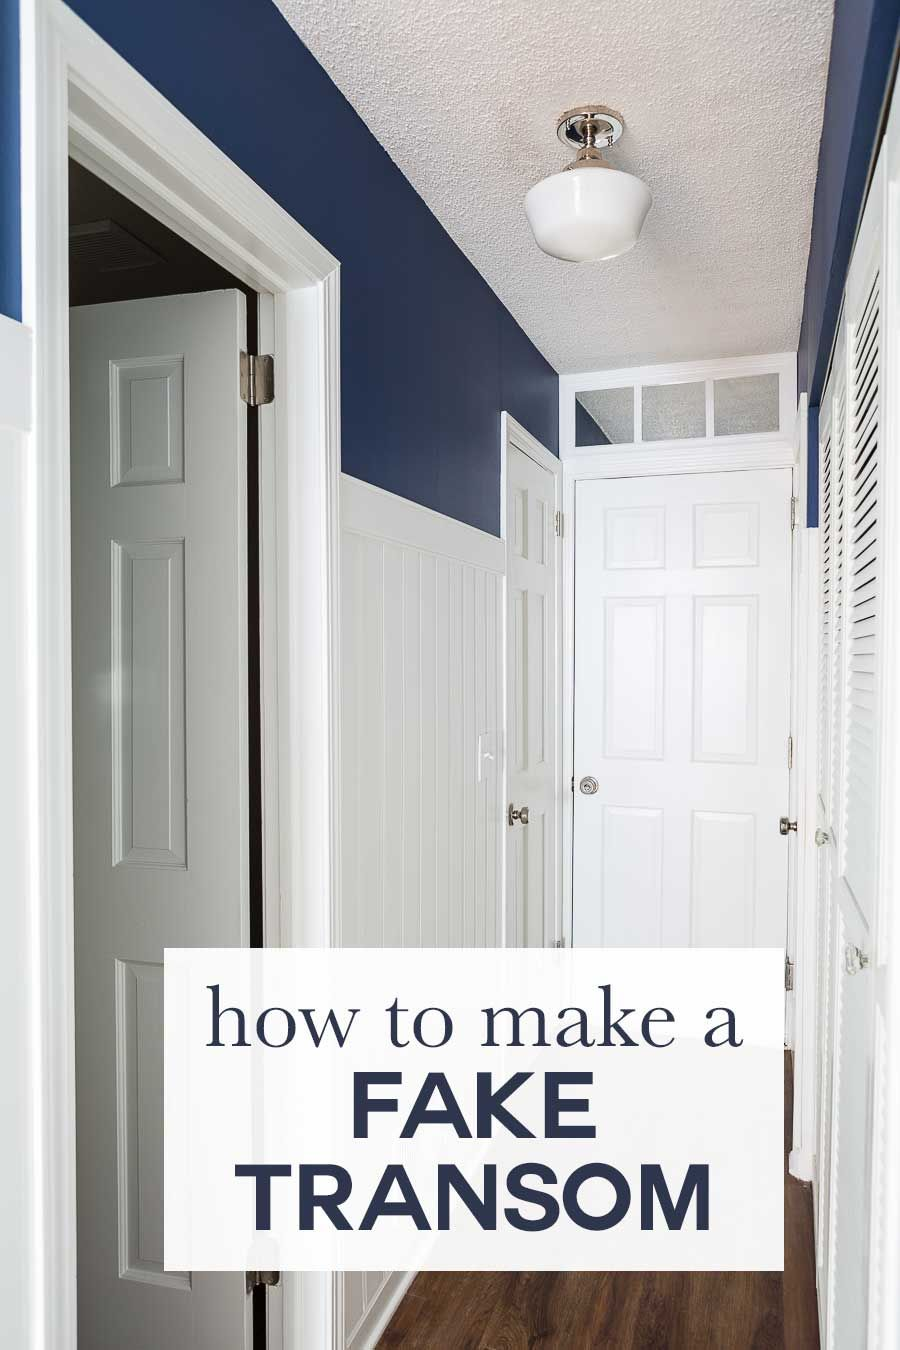 How To Make A Fake Transom Above Door Or Window Using Mirror Tiles Repurposing Ideas For Diy Home Decorating Via Inmyownstyle